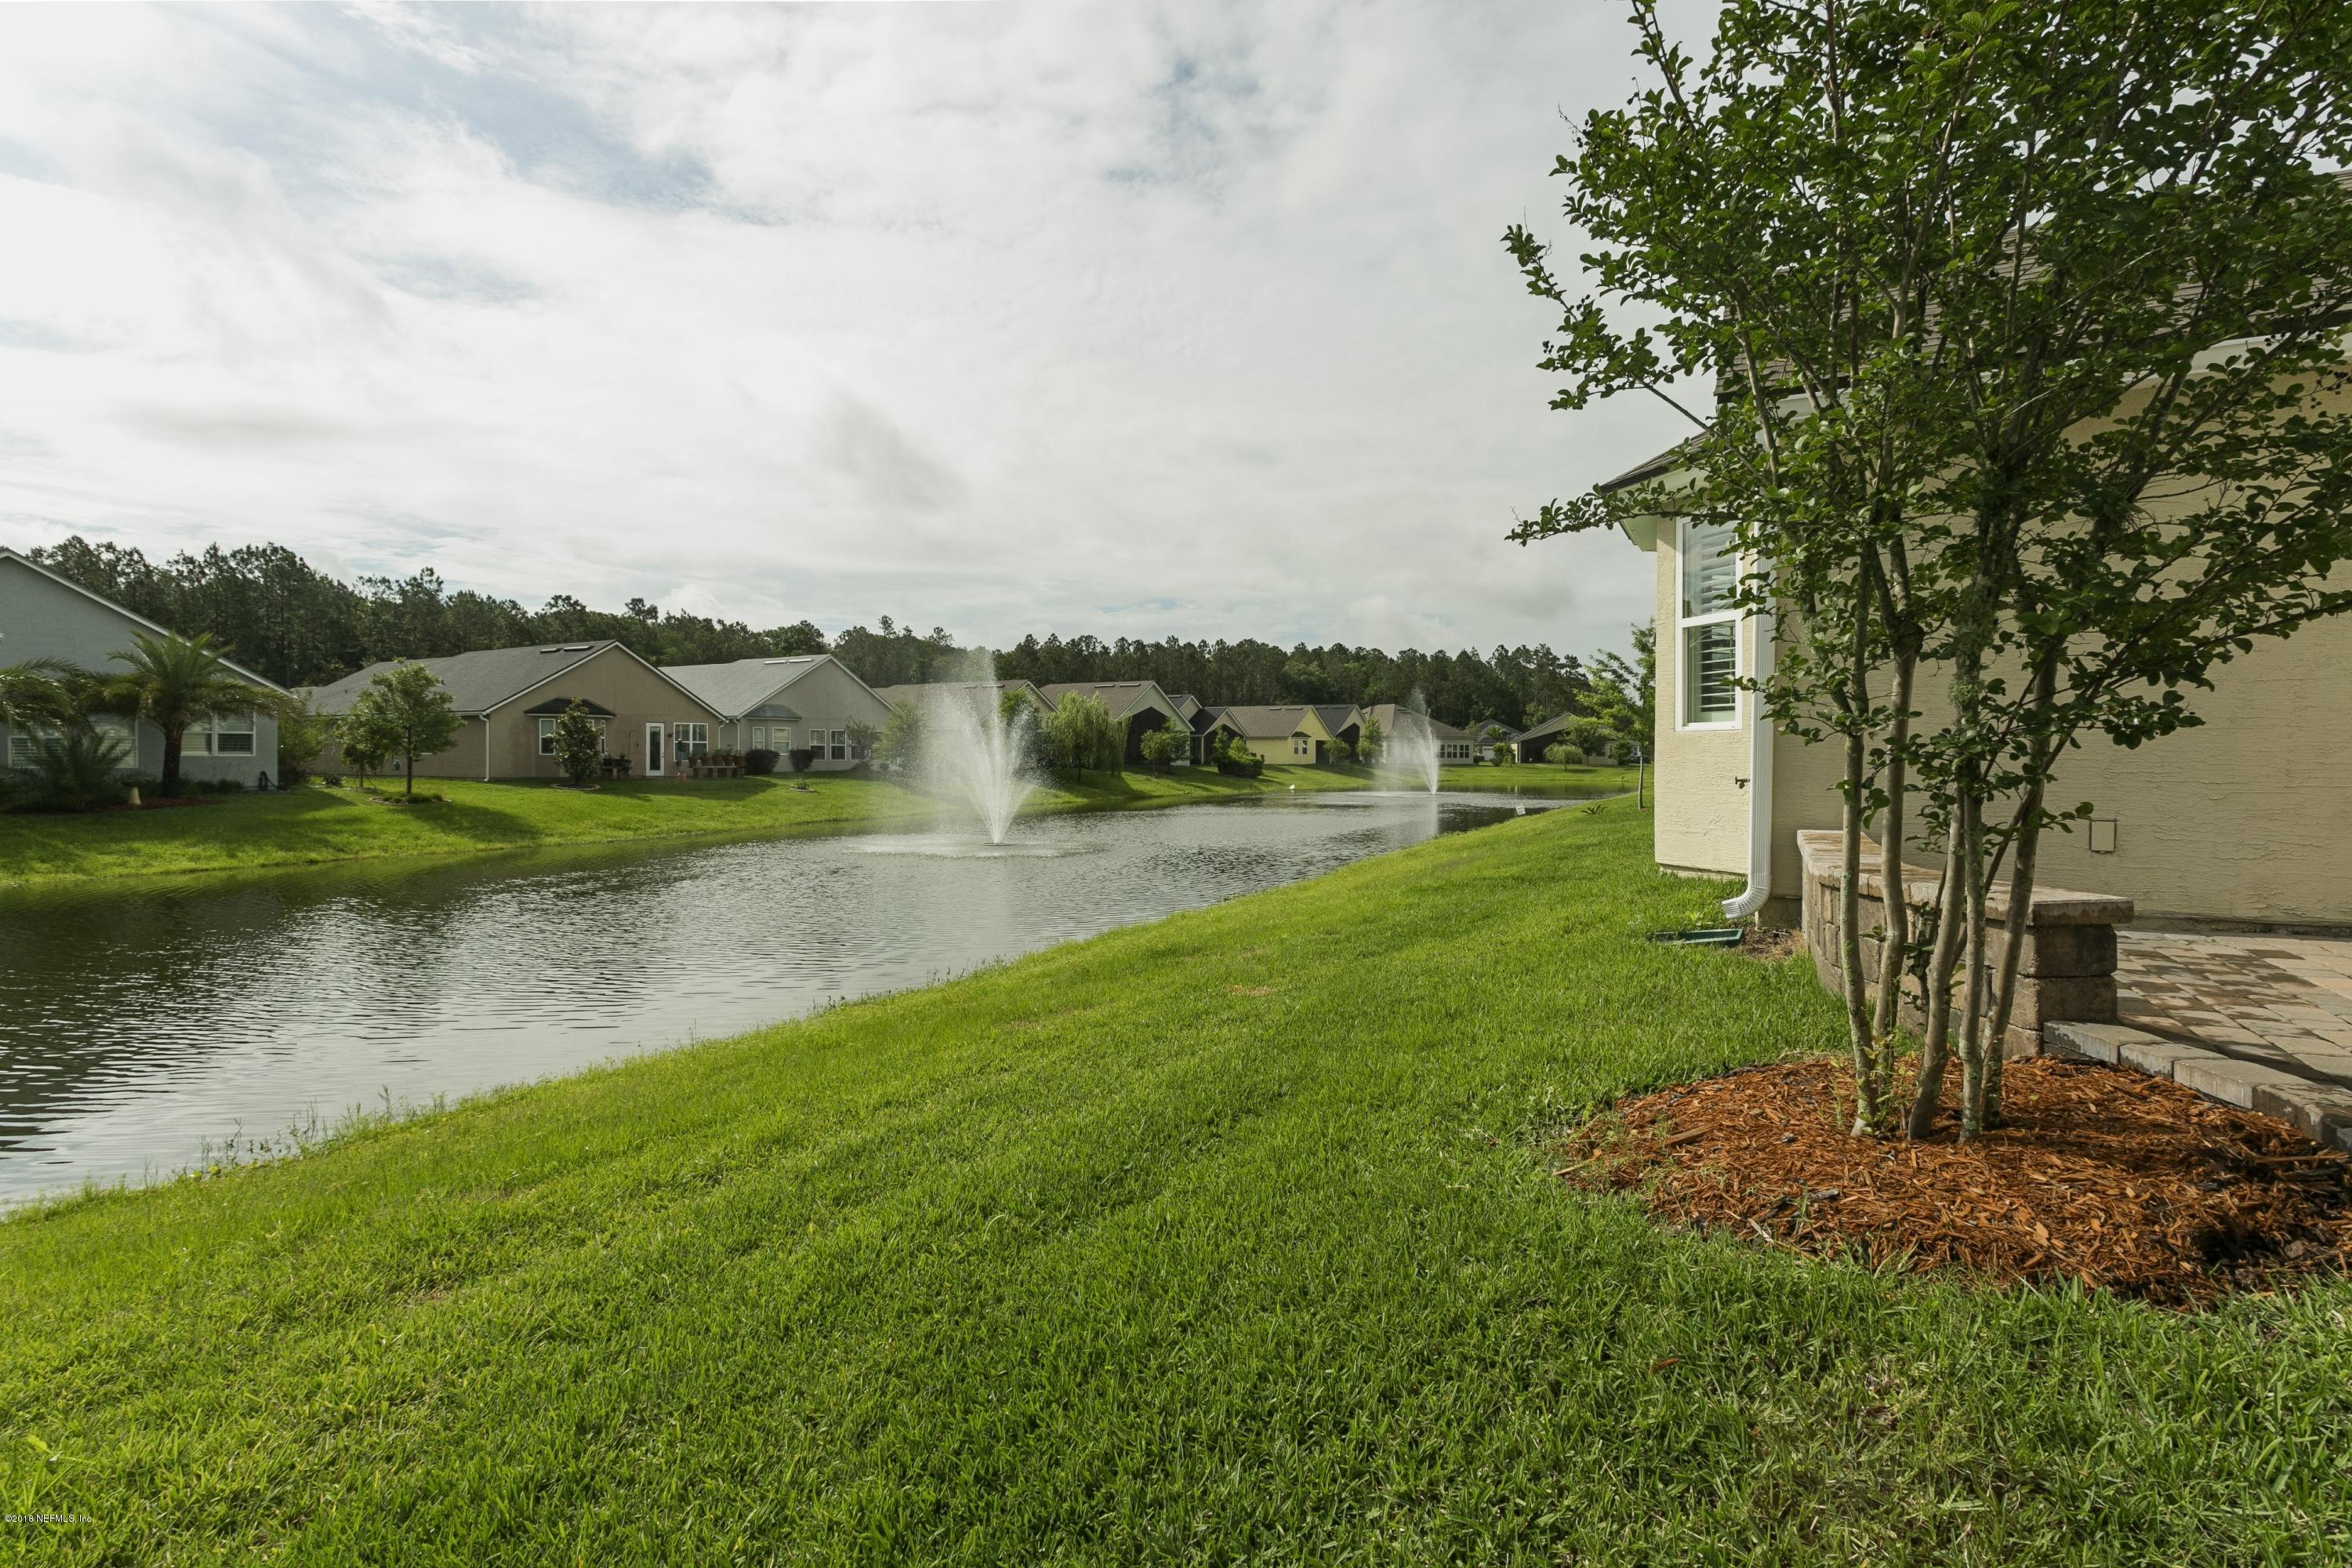 620 LEGACY, ST AUGUSTINE, FLORIDA 32092, 3 Bedrooms Bedrooms, ,2 BathroomsBathrooms,Residential - single family,For sale,LEGACY,937440